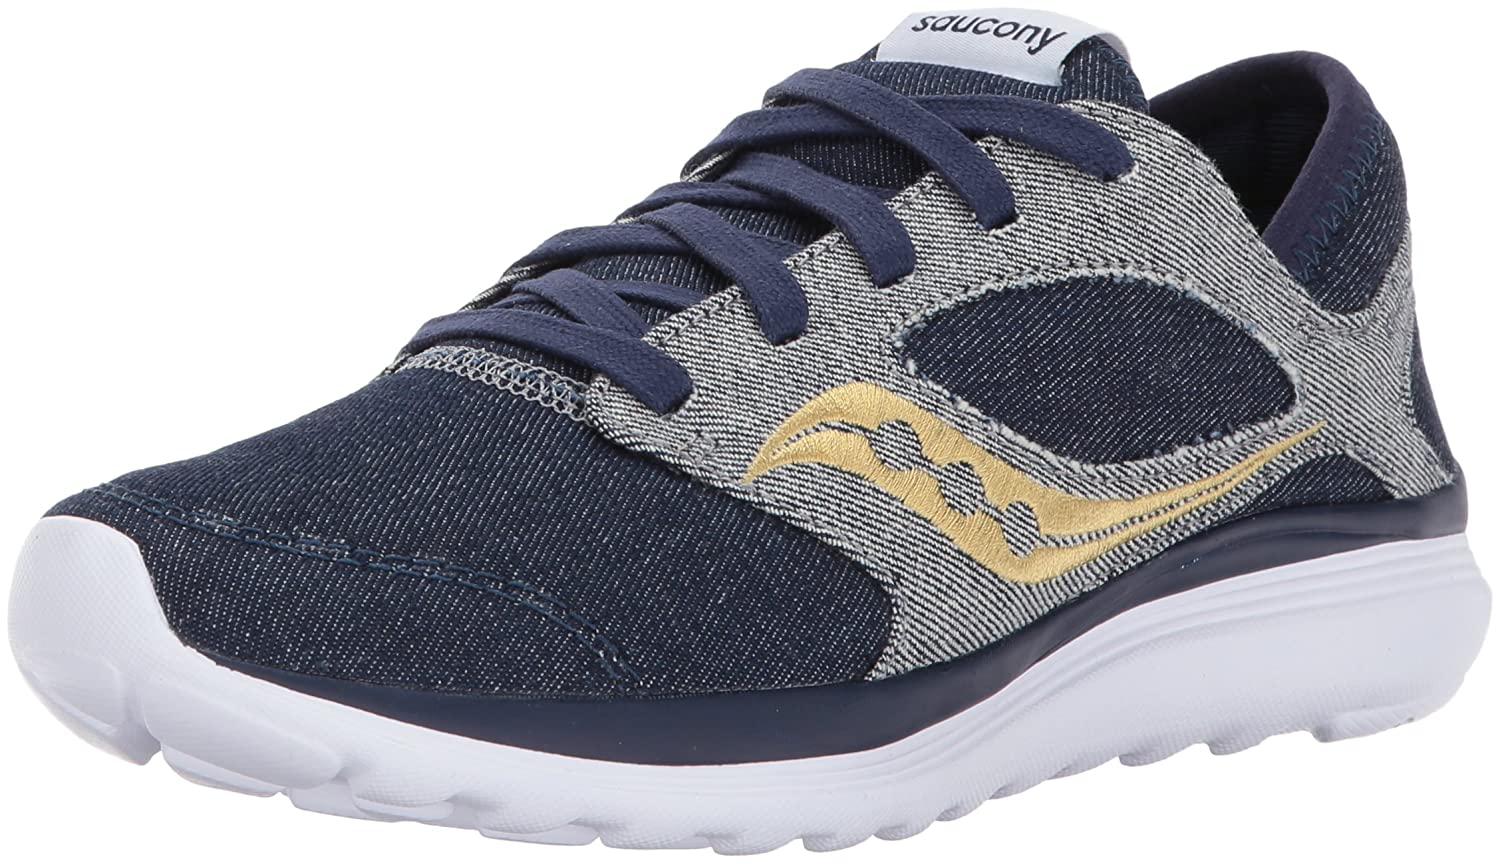 Saucony Women's Kineta Relay Denim Sneaker B01N6JHSFP 8.5 B(M) US|Blue